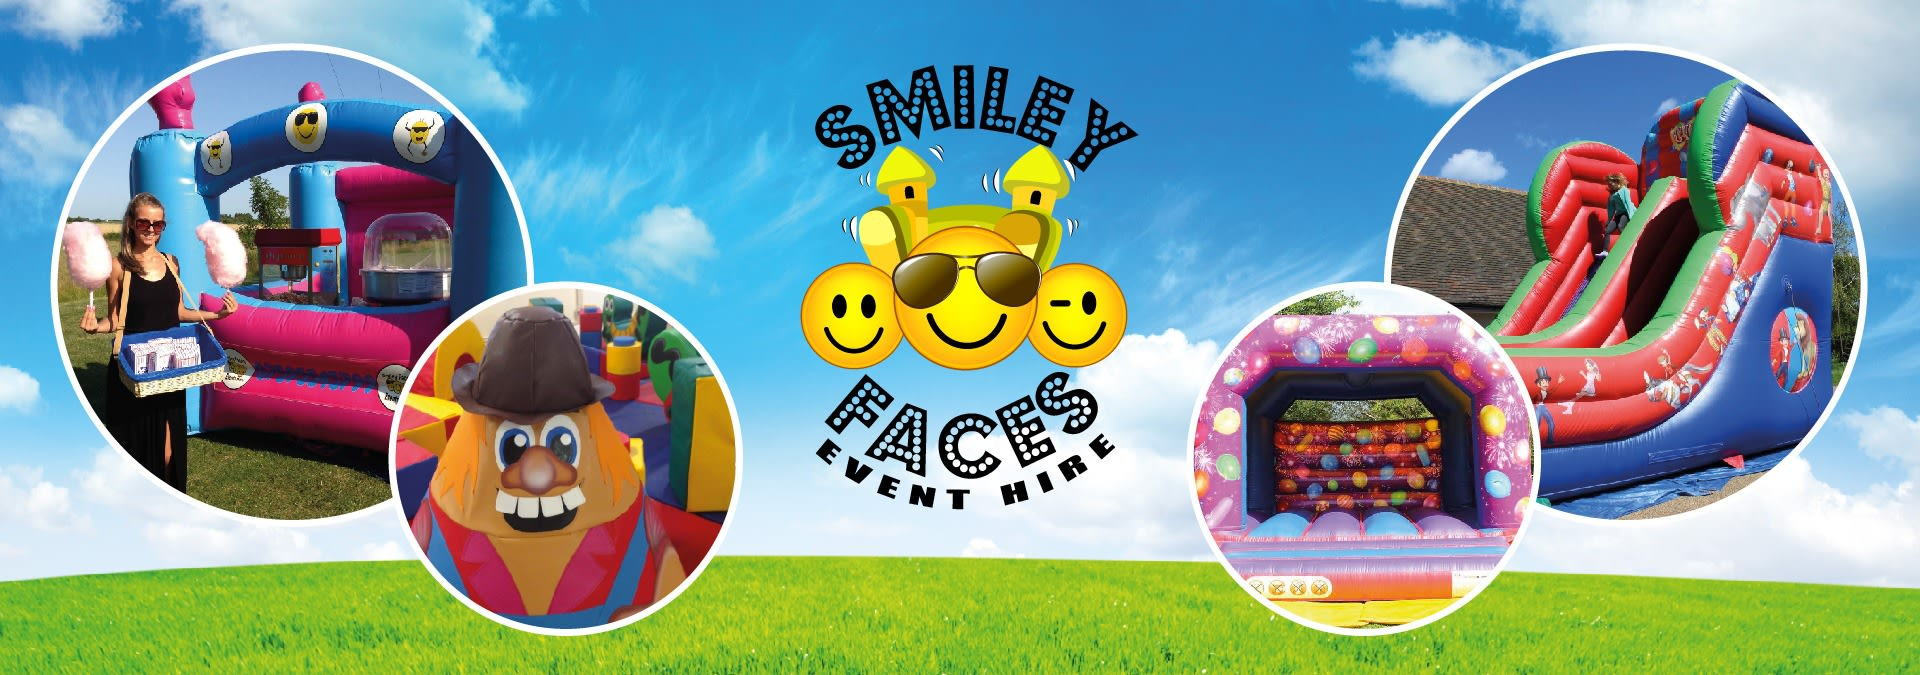 Smiley Faces Event Hire